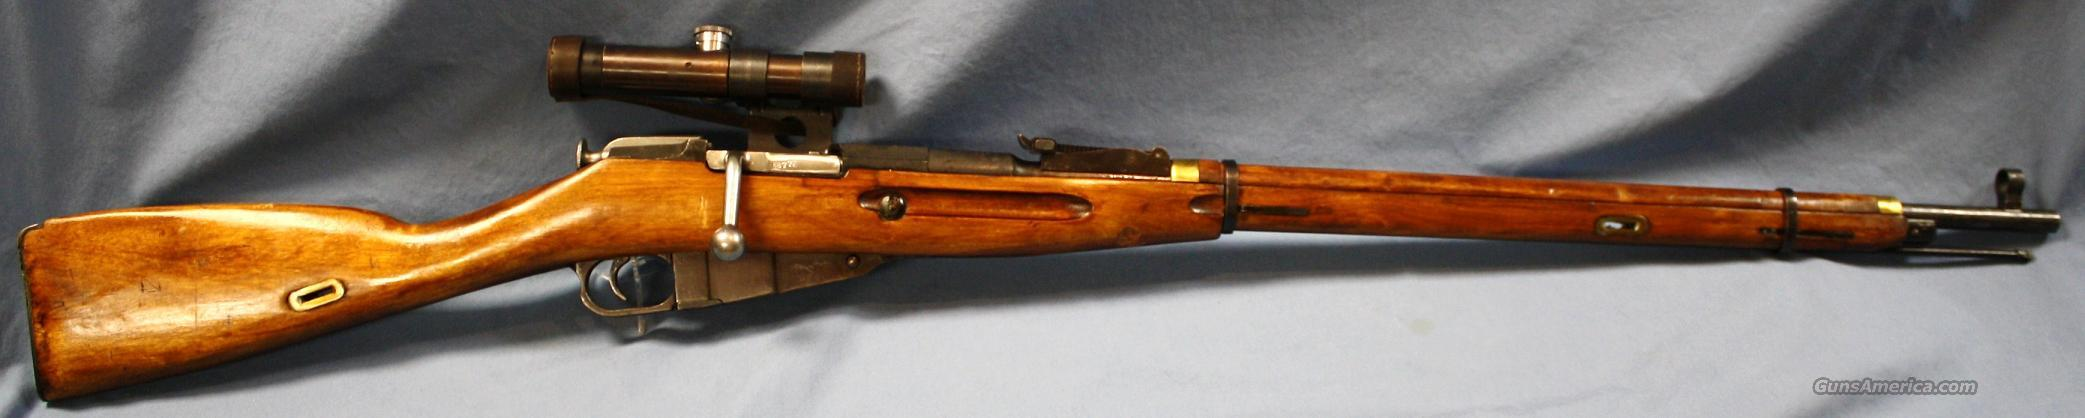 Mosin-Nagant 1891/30 Tula WWII Soviet Army Bolt Action Sniper Rifle 7.62x54R  Guns > Rifles > Mosin-Nagant Rifles/Carbines